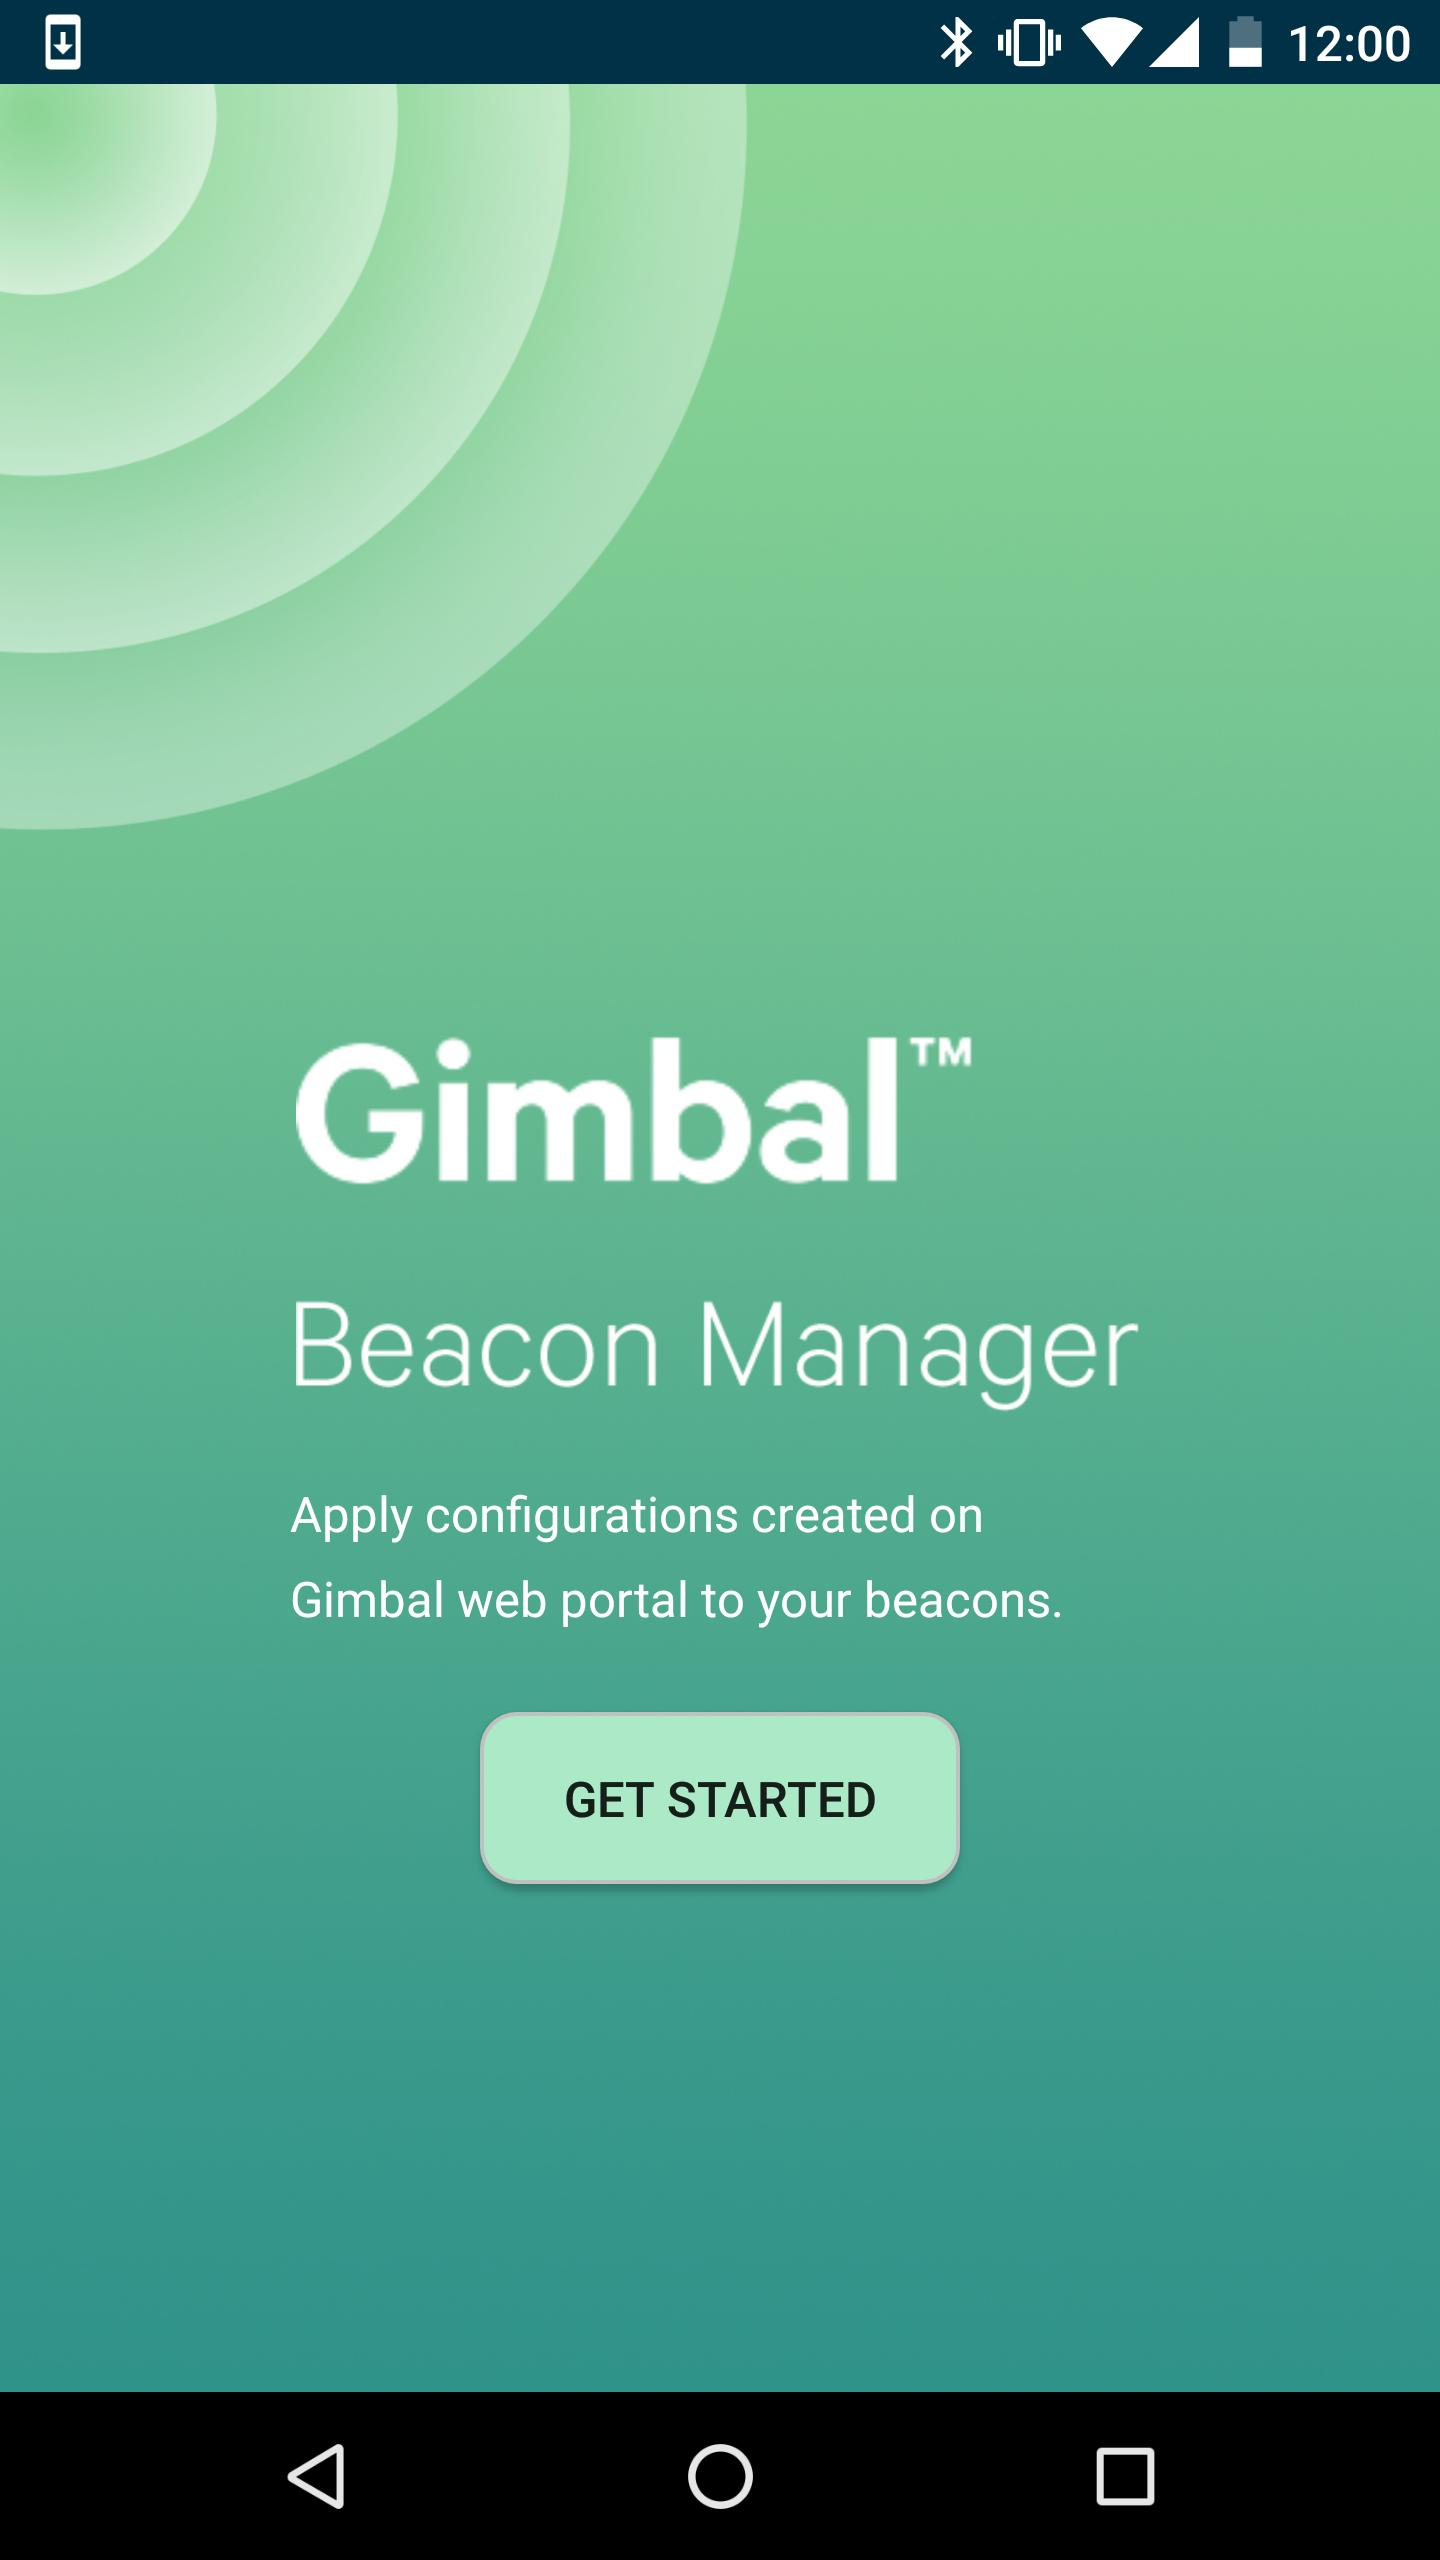 Gimbal Beacon Manager for Android - APK Download